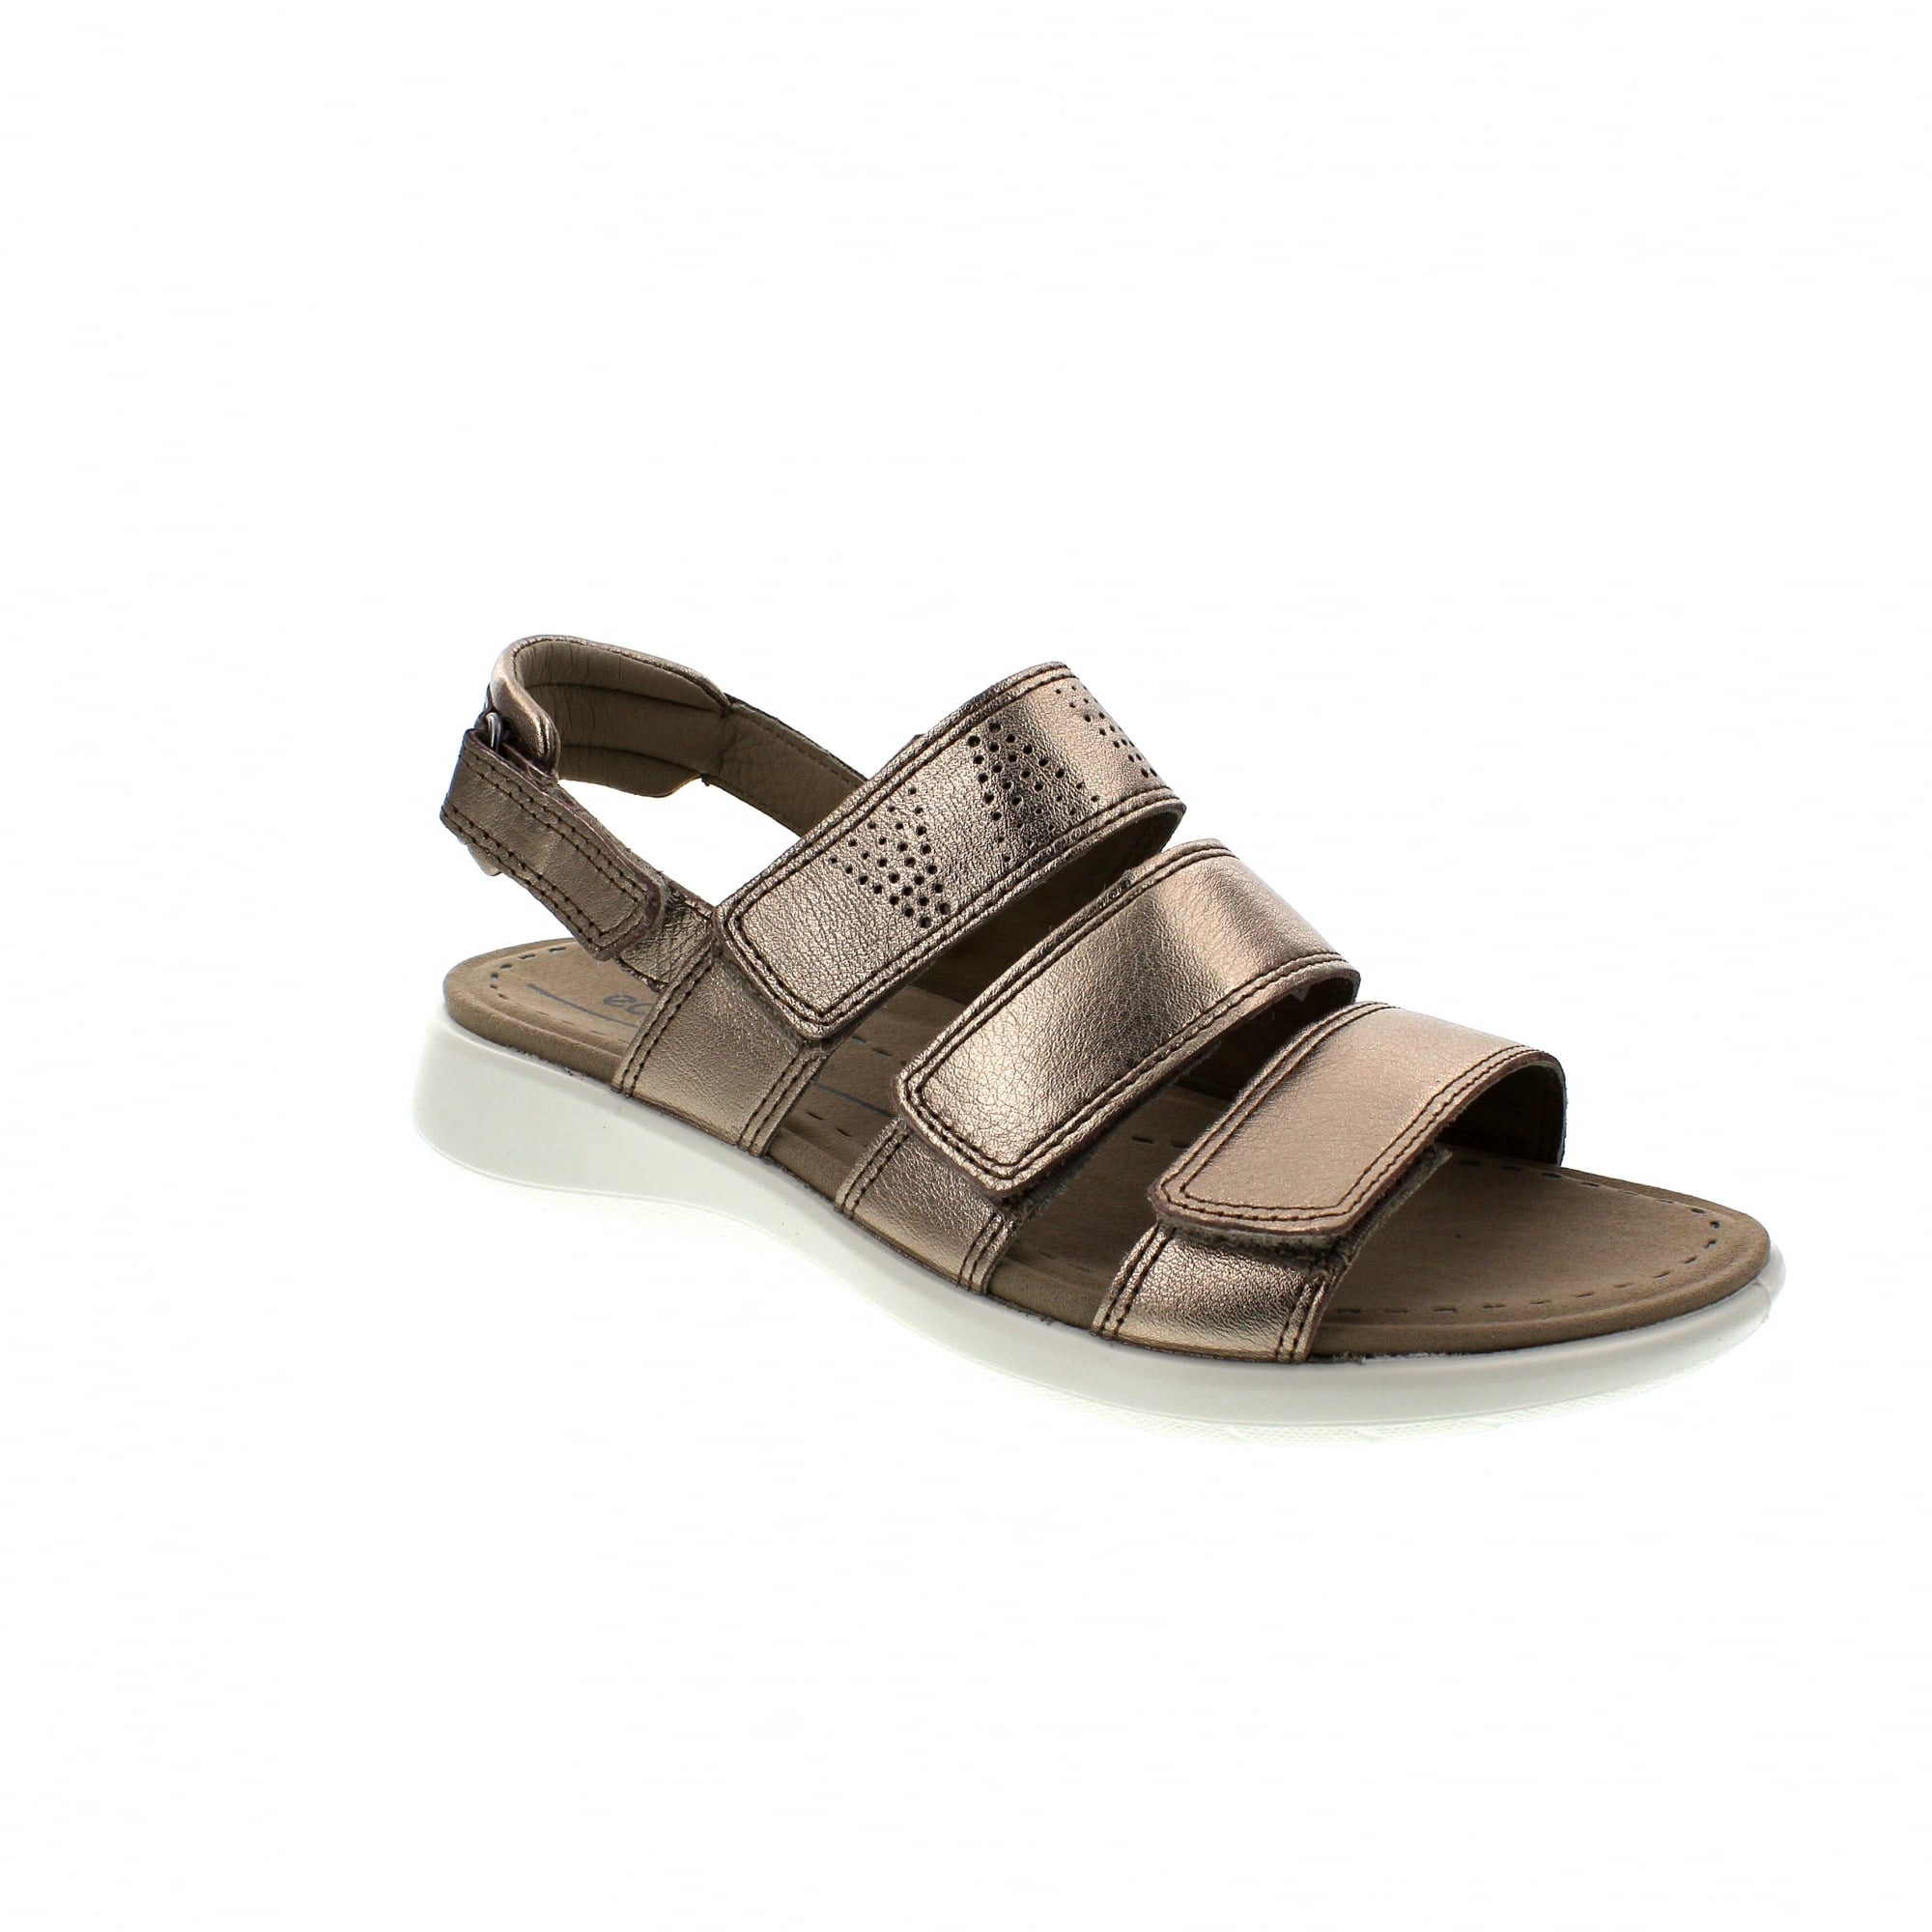 2bef9b0a59700 Ecco Soft 5 Sandal | 218523-01375 - Womens from Rogerson Shoes UK